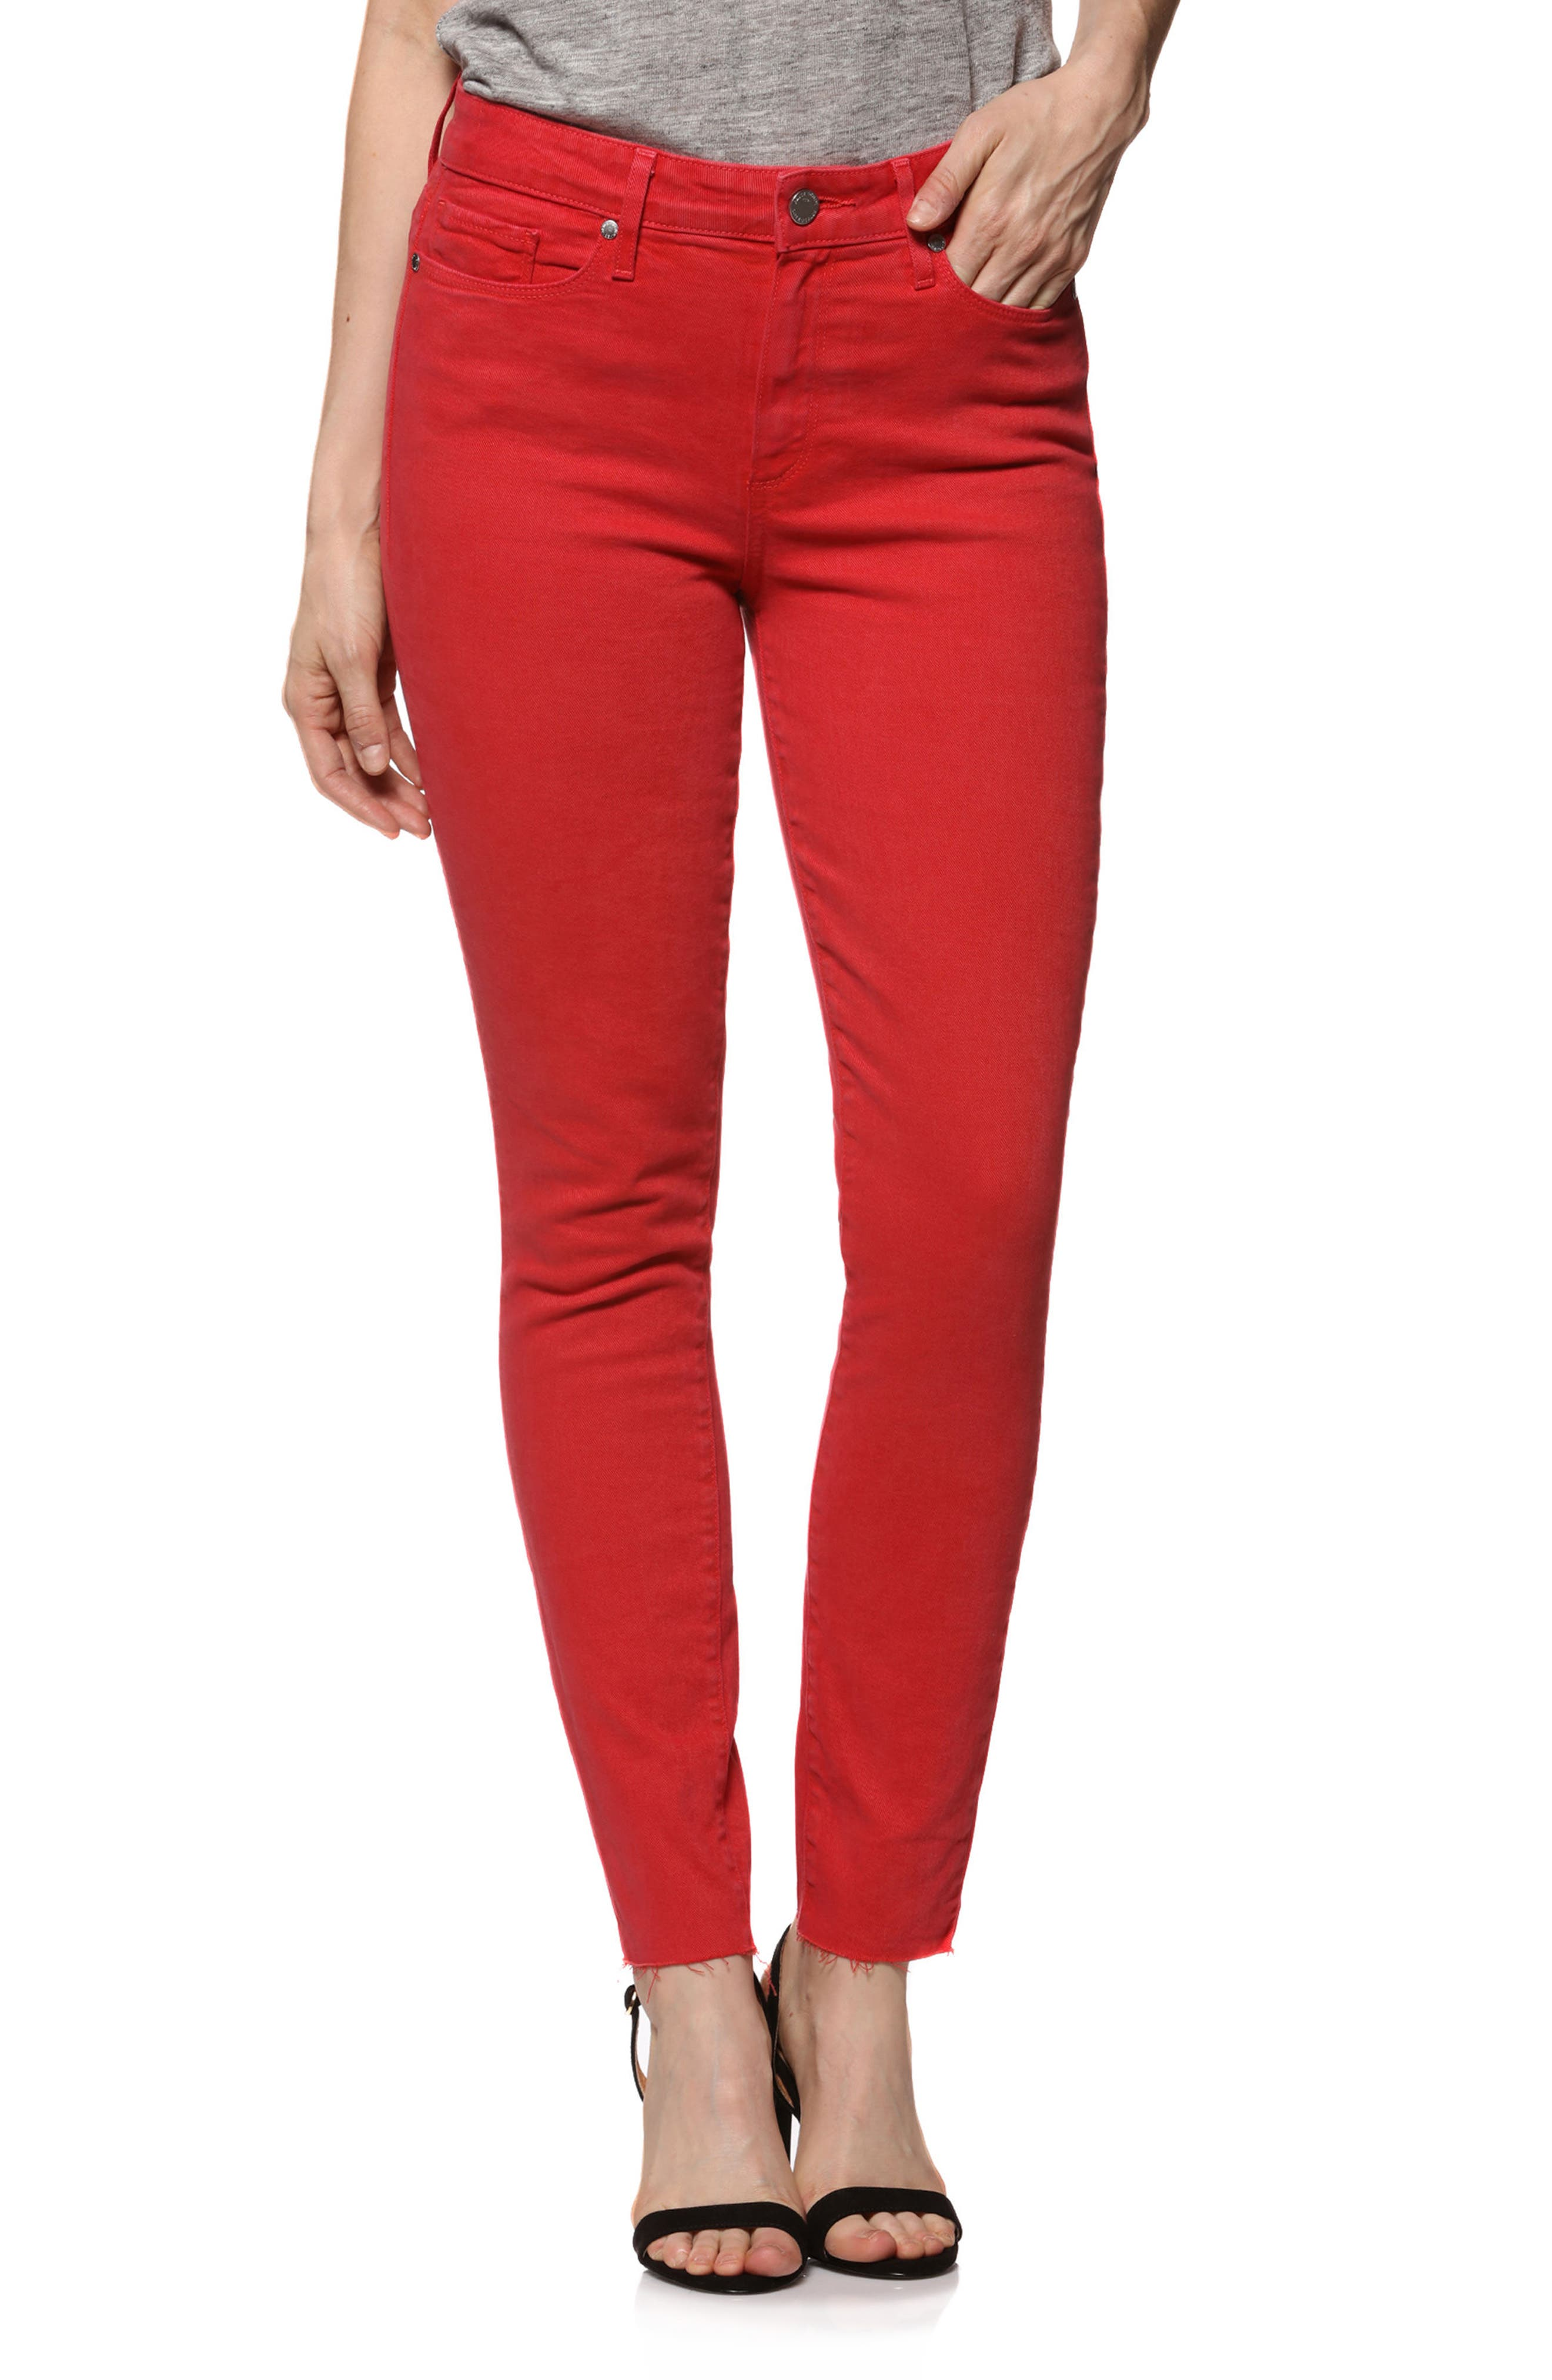 Hoxton High Waist Ankle Skinny Jeans,                         Main,                         color, Vintage Cherry Bomb